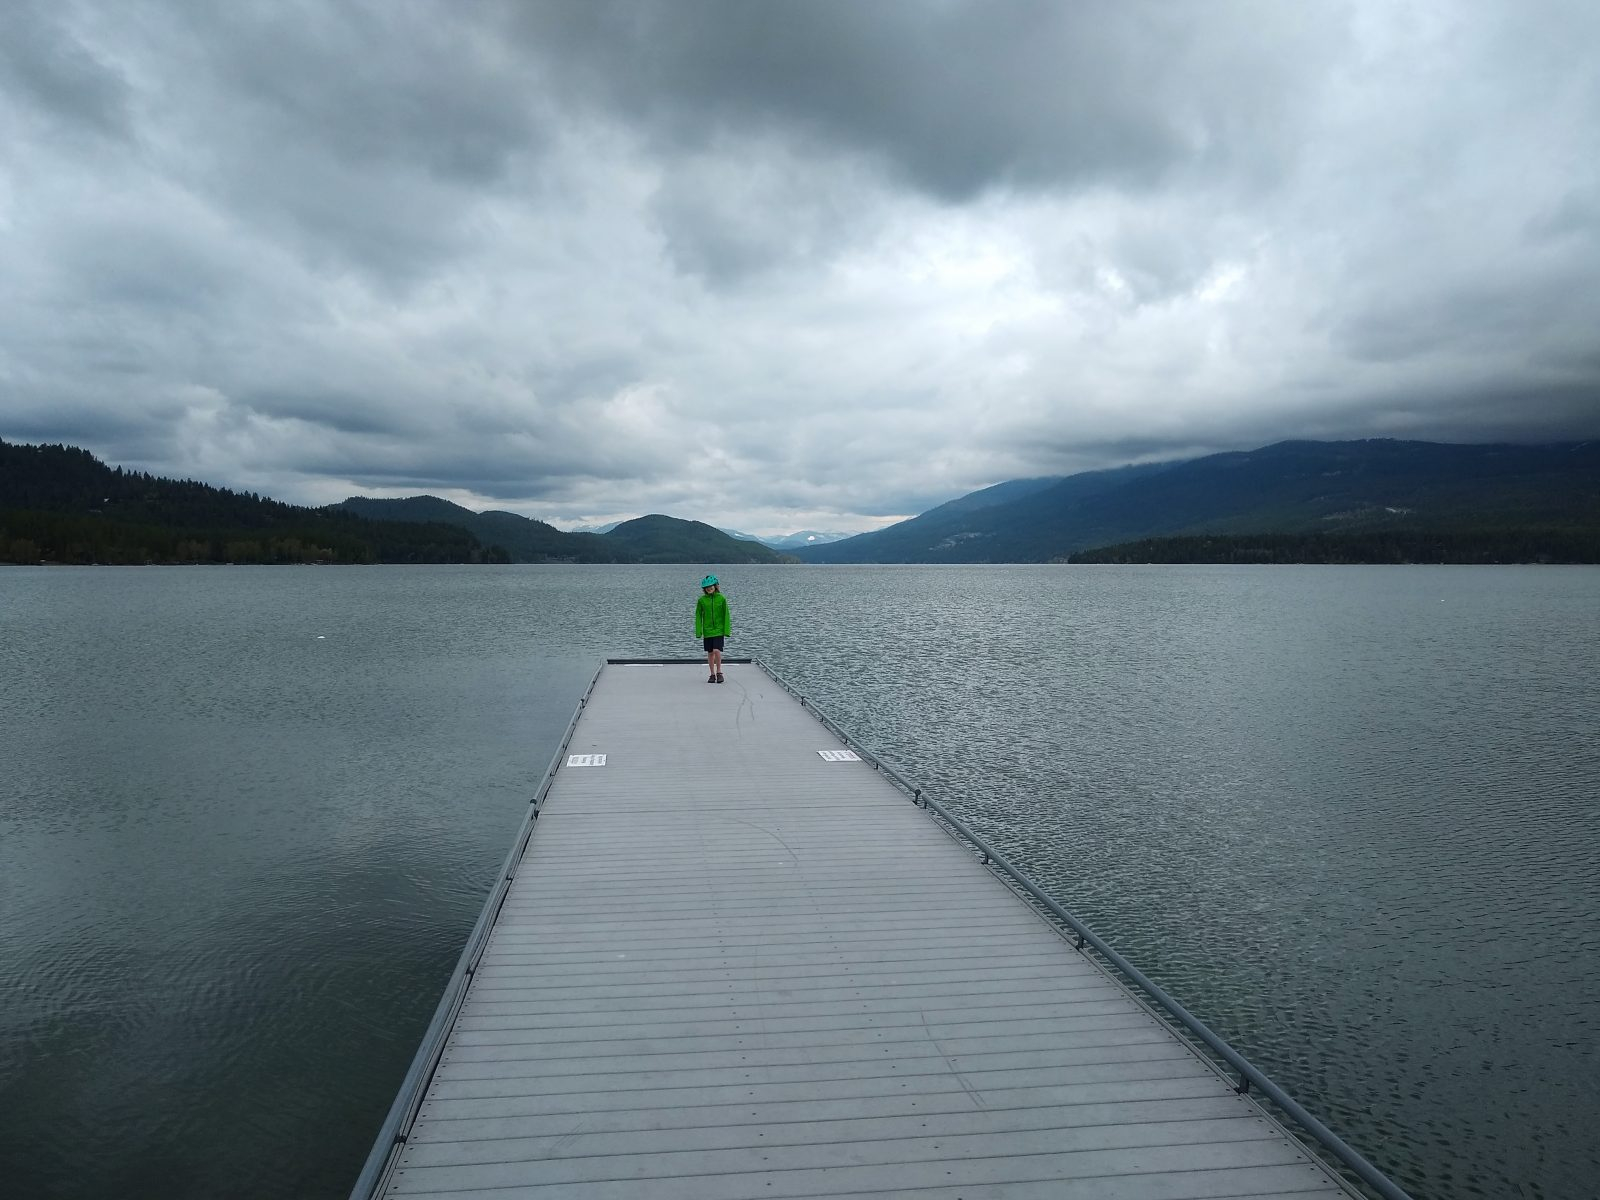 Whitefish Lake - May 15, 2020